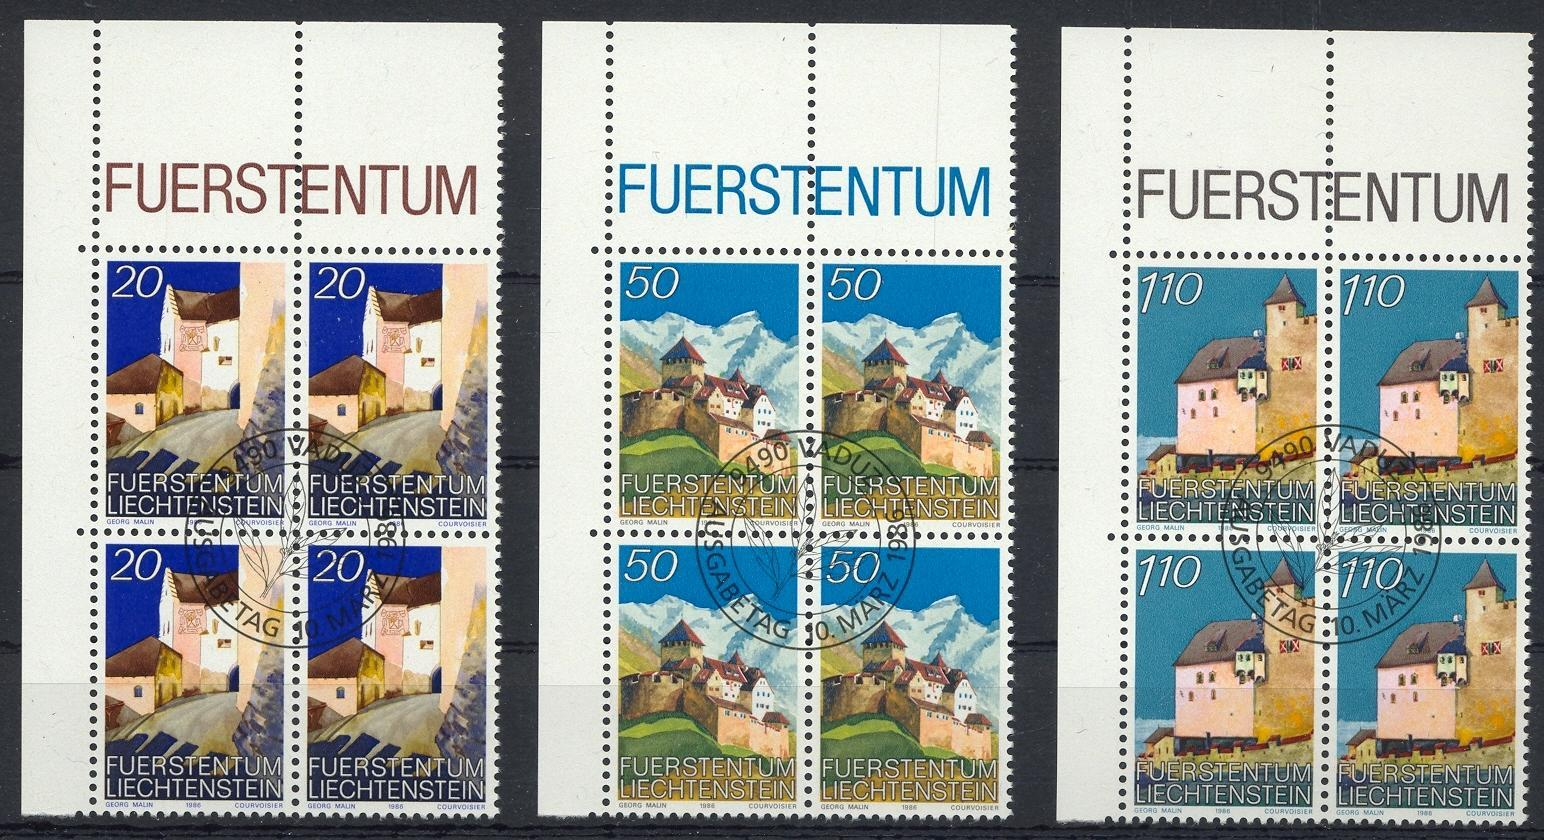 Stamps with Buildings from Liechtenstein (image for product #032107)